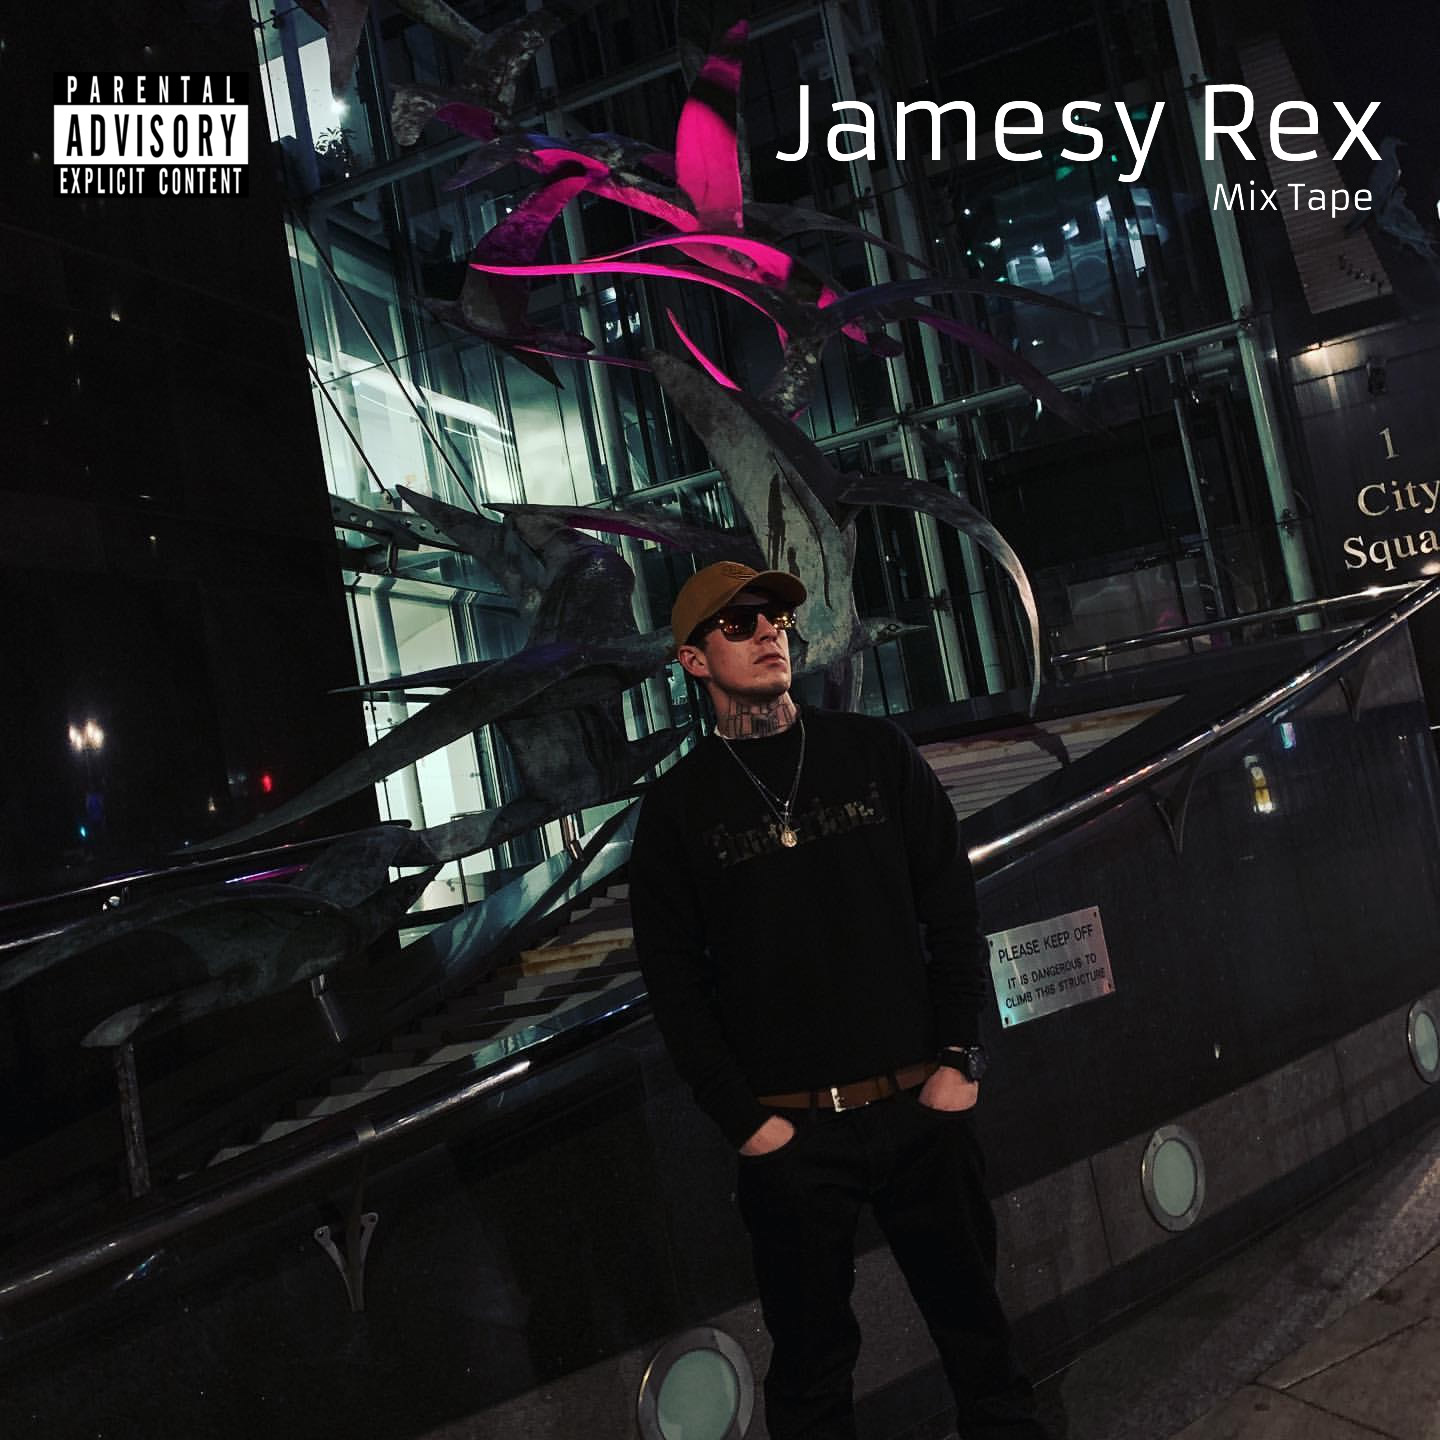 Jamesy Rex - Mix Tape